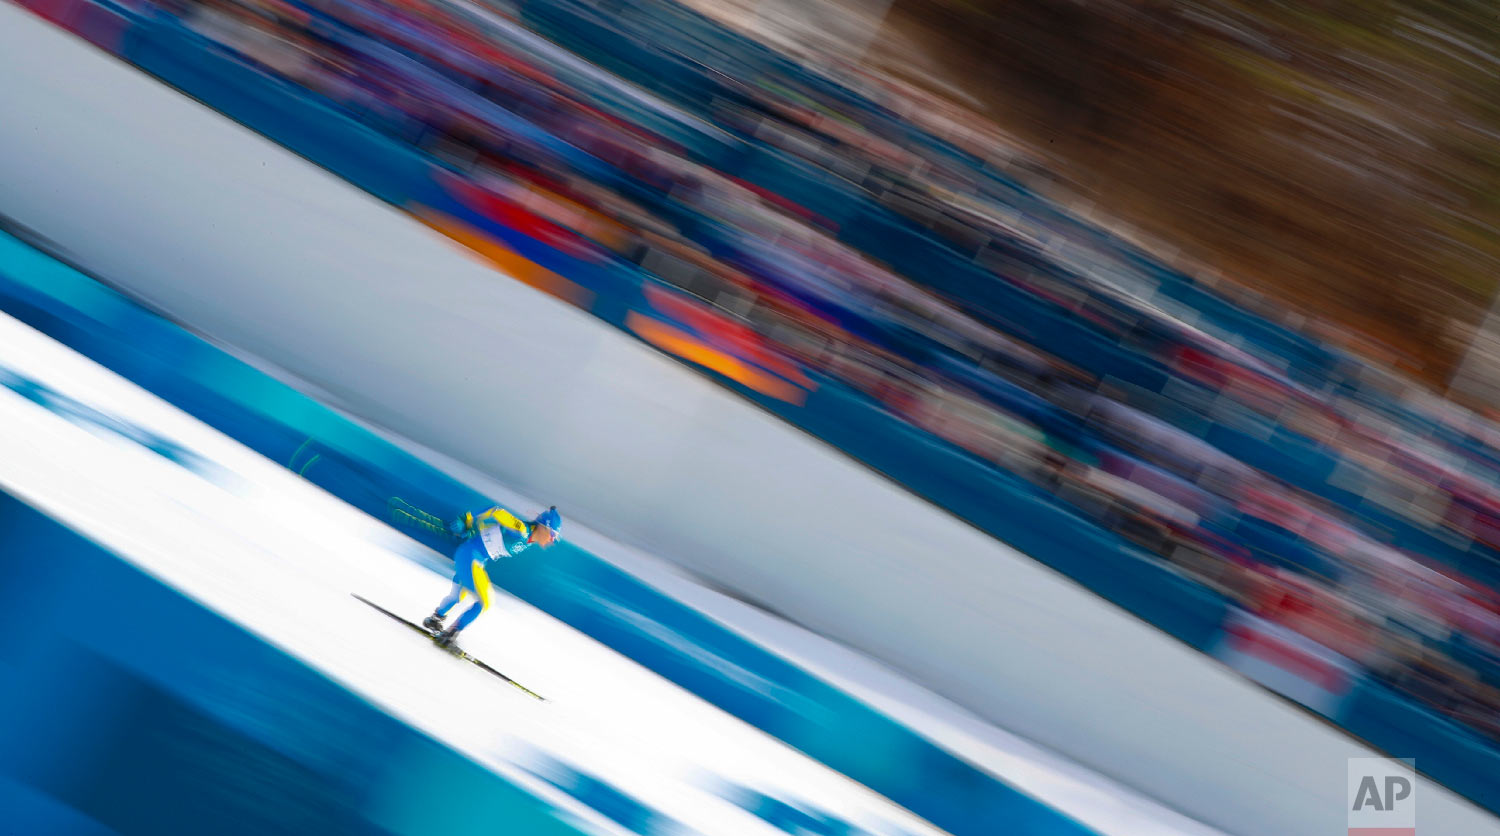 Maryna Antsybor, of Ukraine, competes during the women's 10km freestyle cross-country skiing competition at the 2018 Winter Olympics in Pyeongchang, South Korea, Thursday, Feb. 15, 2018. (AP Photo/Matthias Schrader)